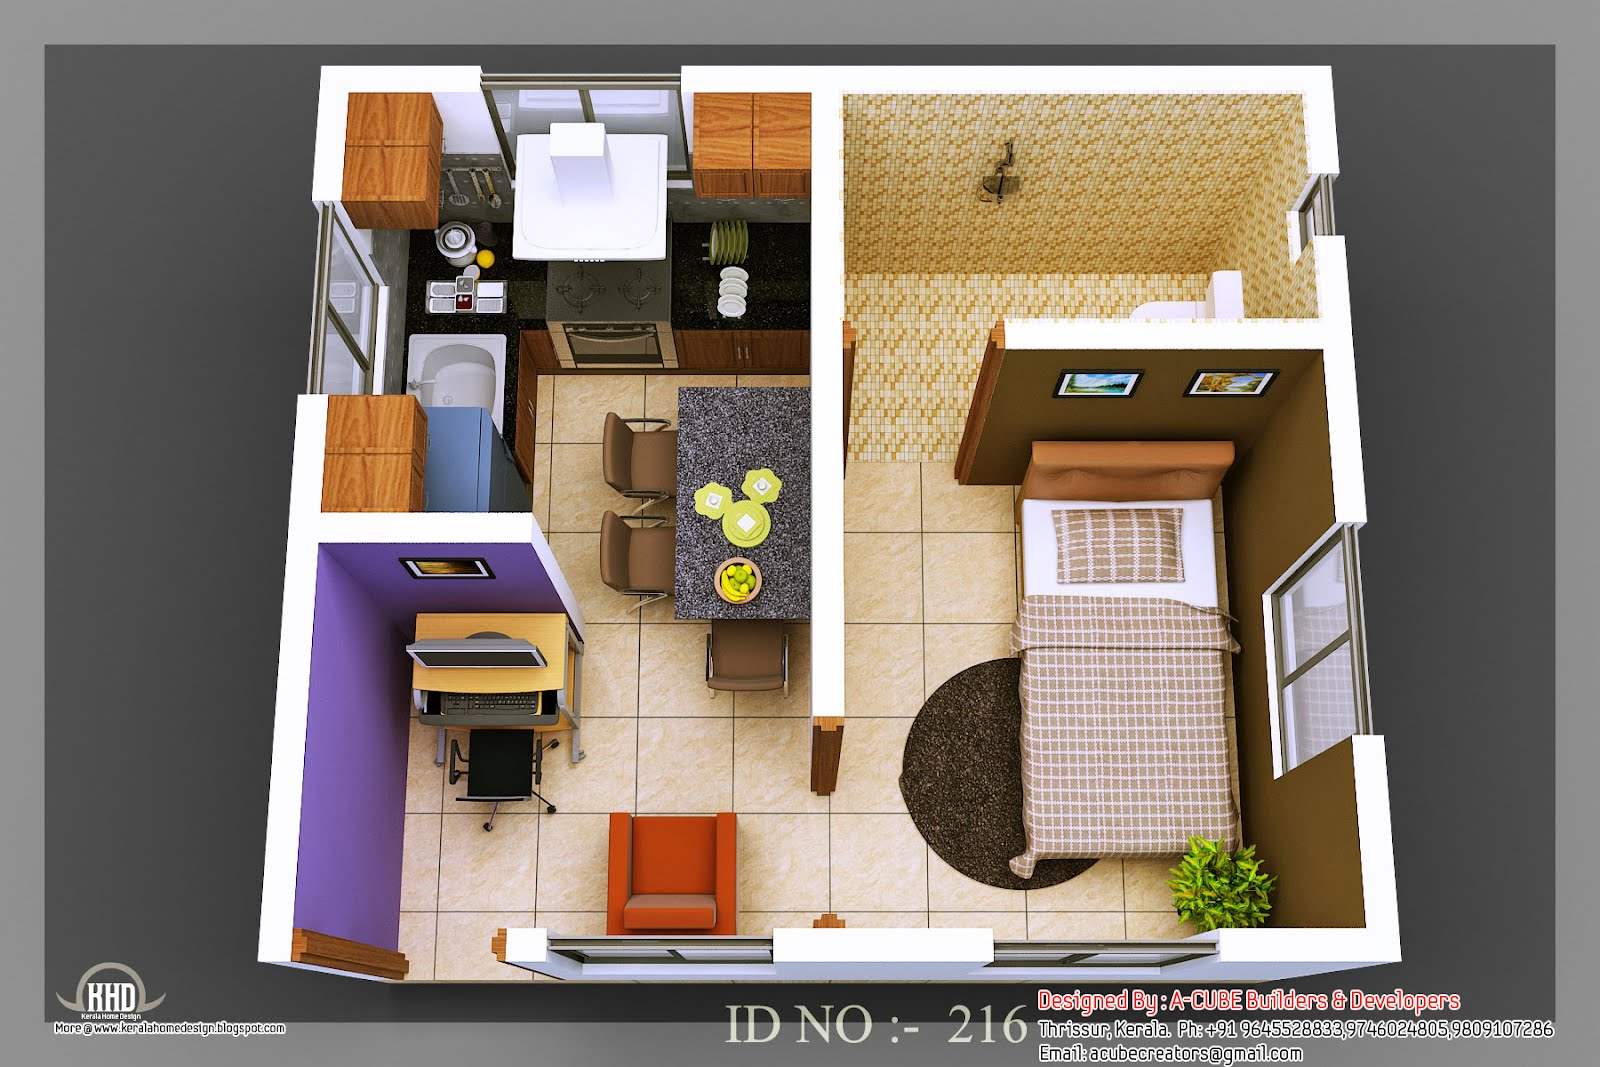 3d isometric views of small house plans home appliance for 3d house blueprints